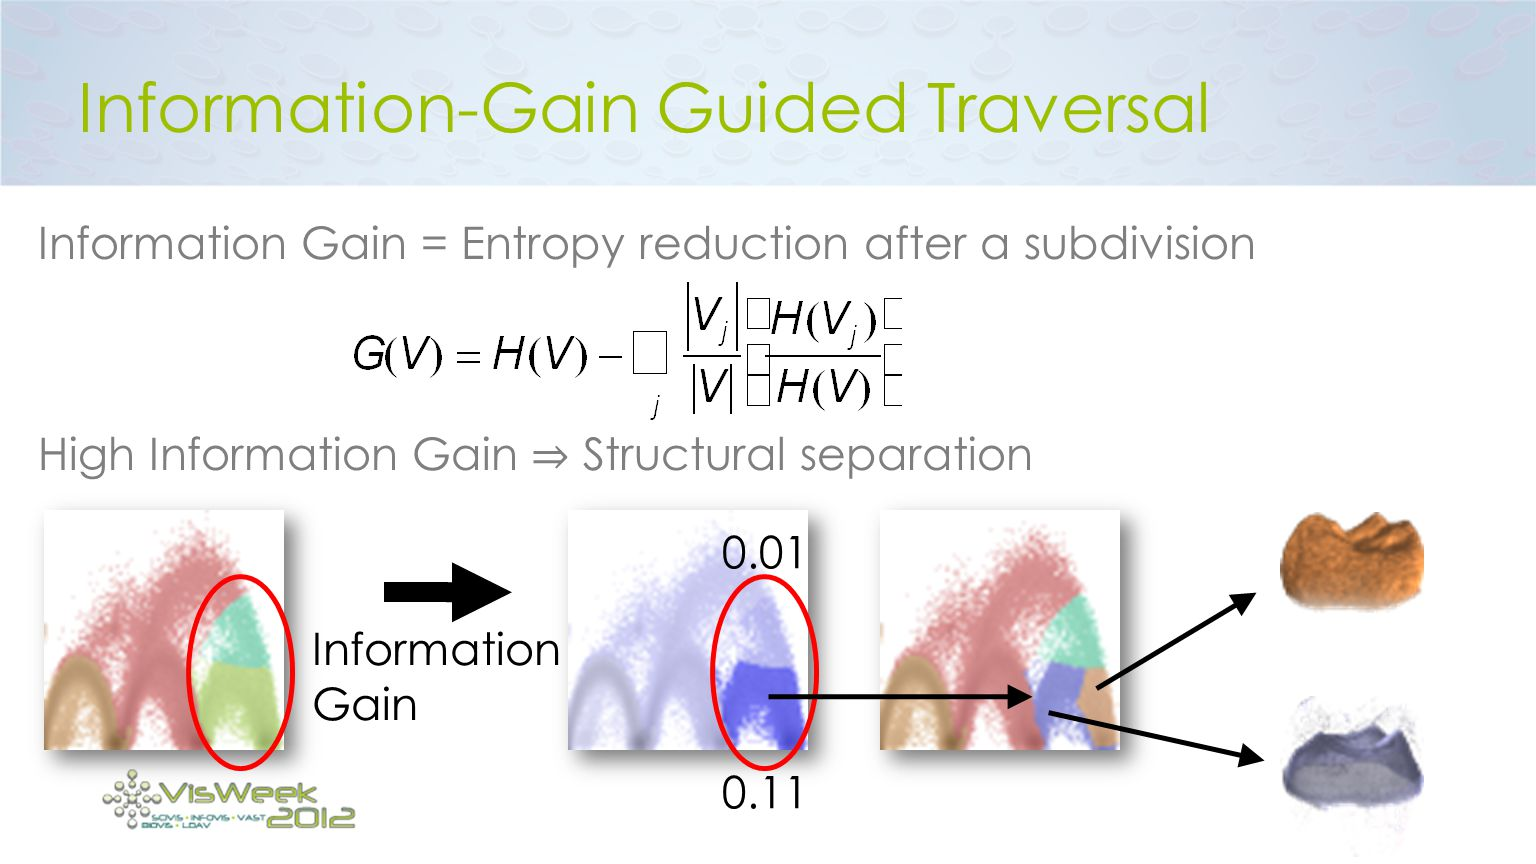 Information-Gain Guided Traversal